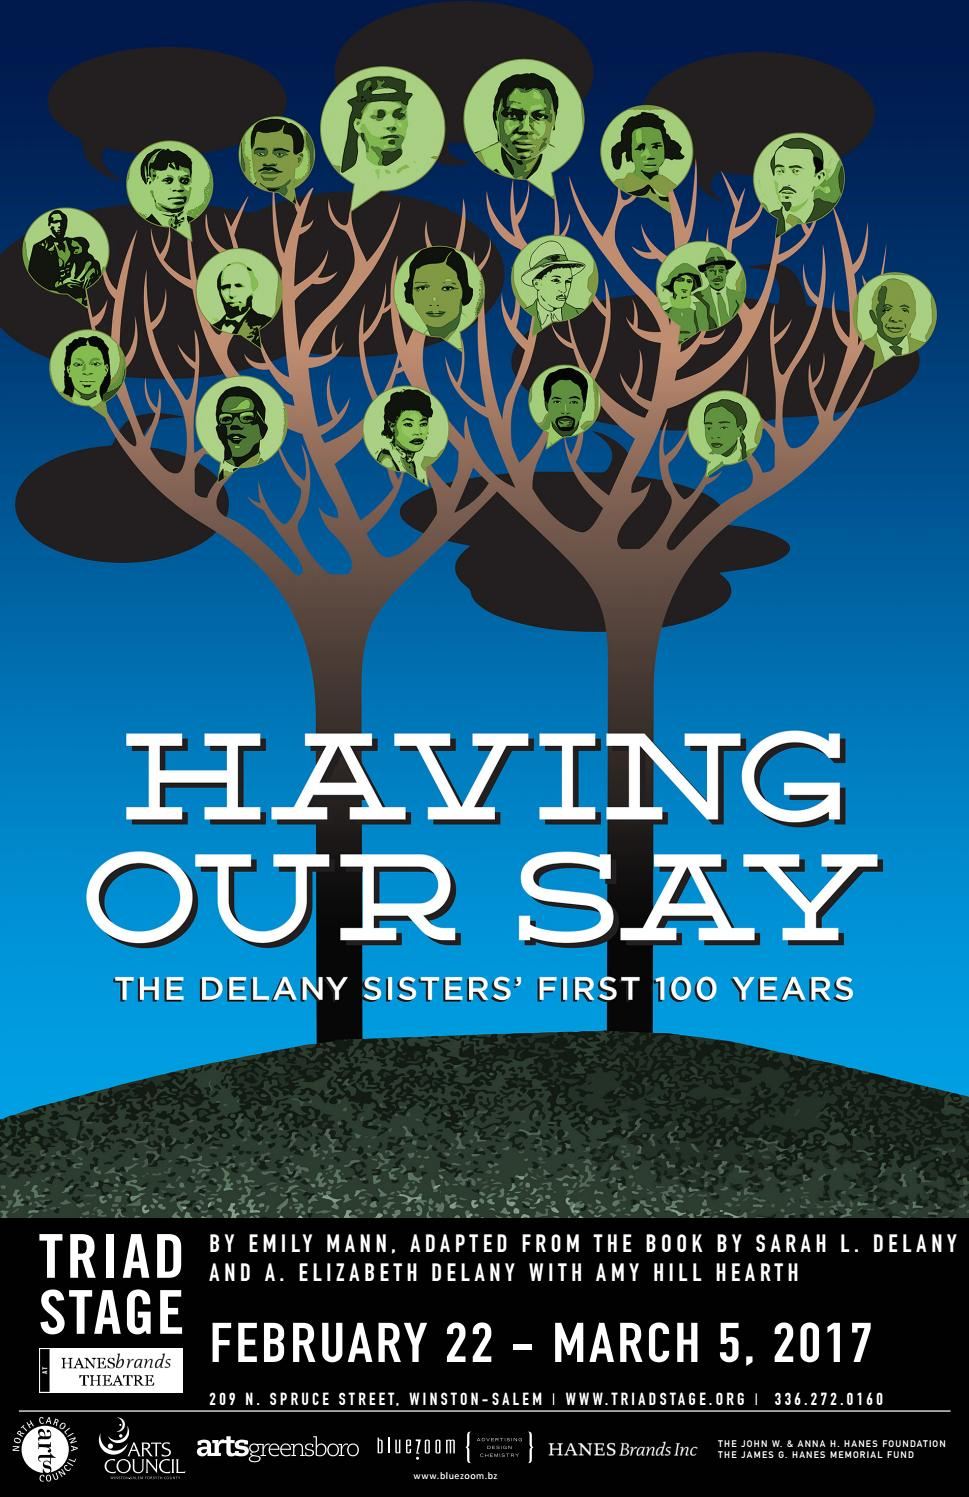 a book review of having our say about the delany sisters